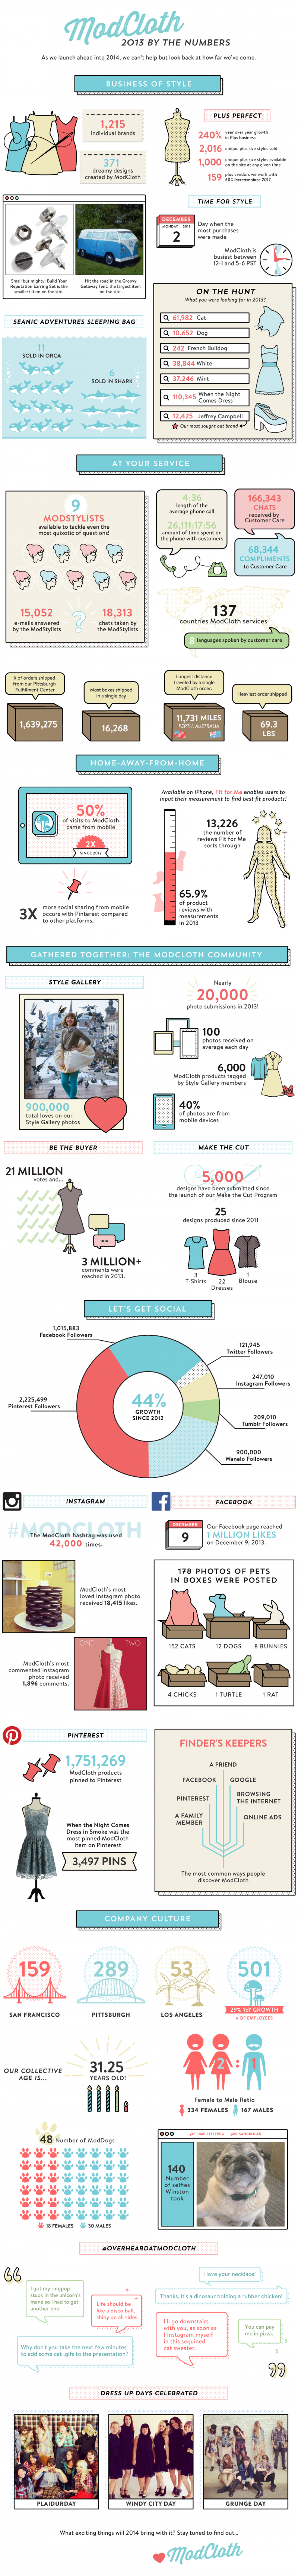 Modcloth 2013 By The Numbers Infographic